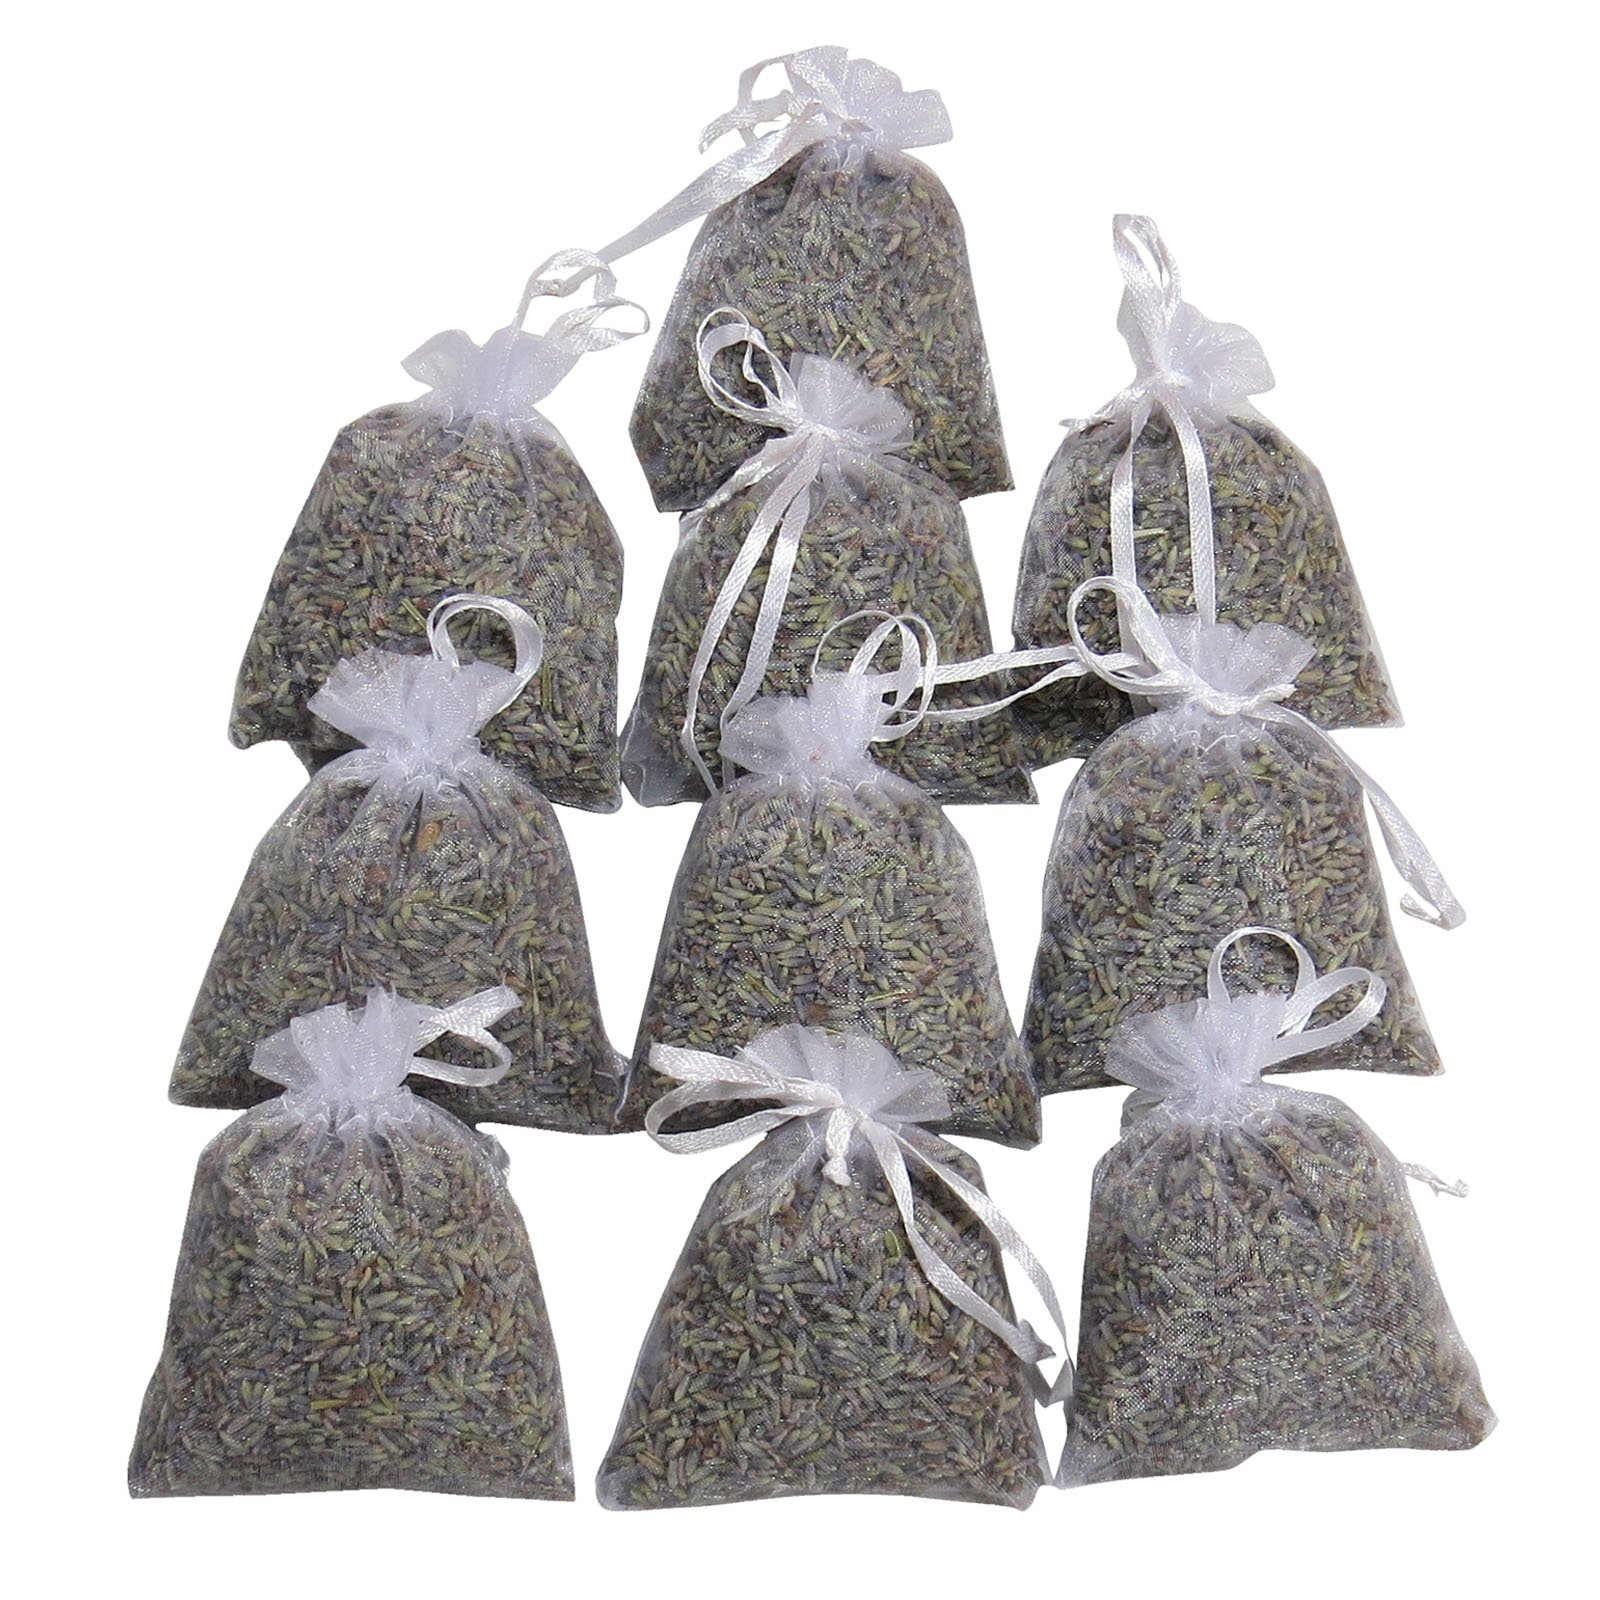 RakrisaSupplies Wedding Lavender Sachet Favor Toss | White Lavender Sachet Bags Pack of 15 | Highest Fragrance Lavender Scent Sachets | LS-007